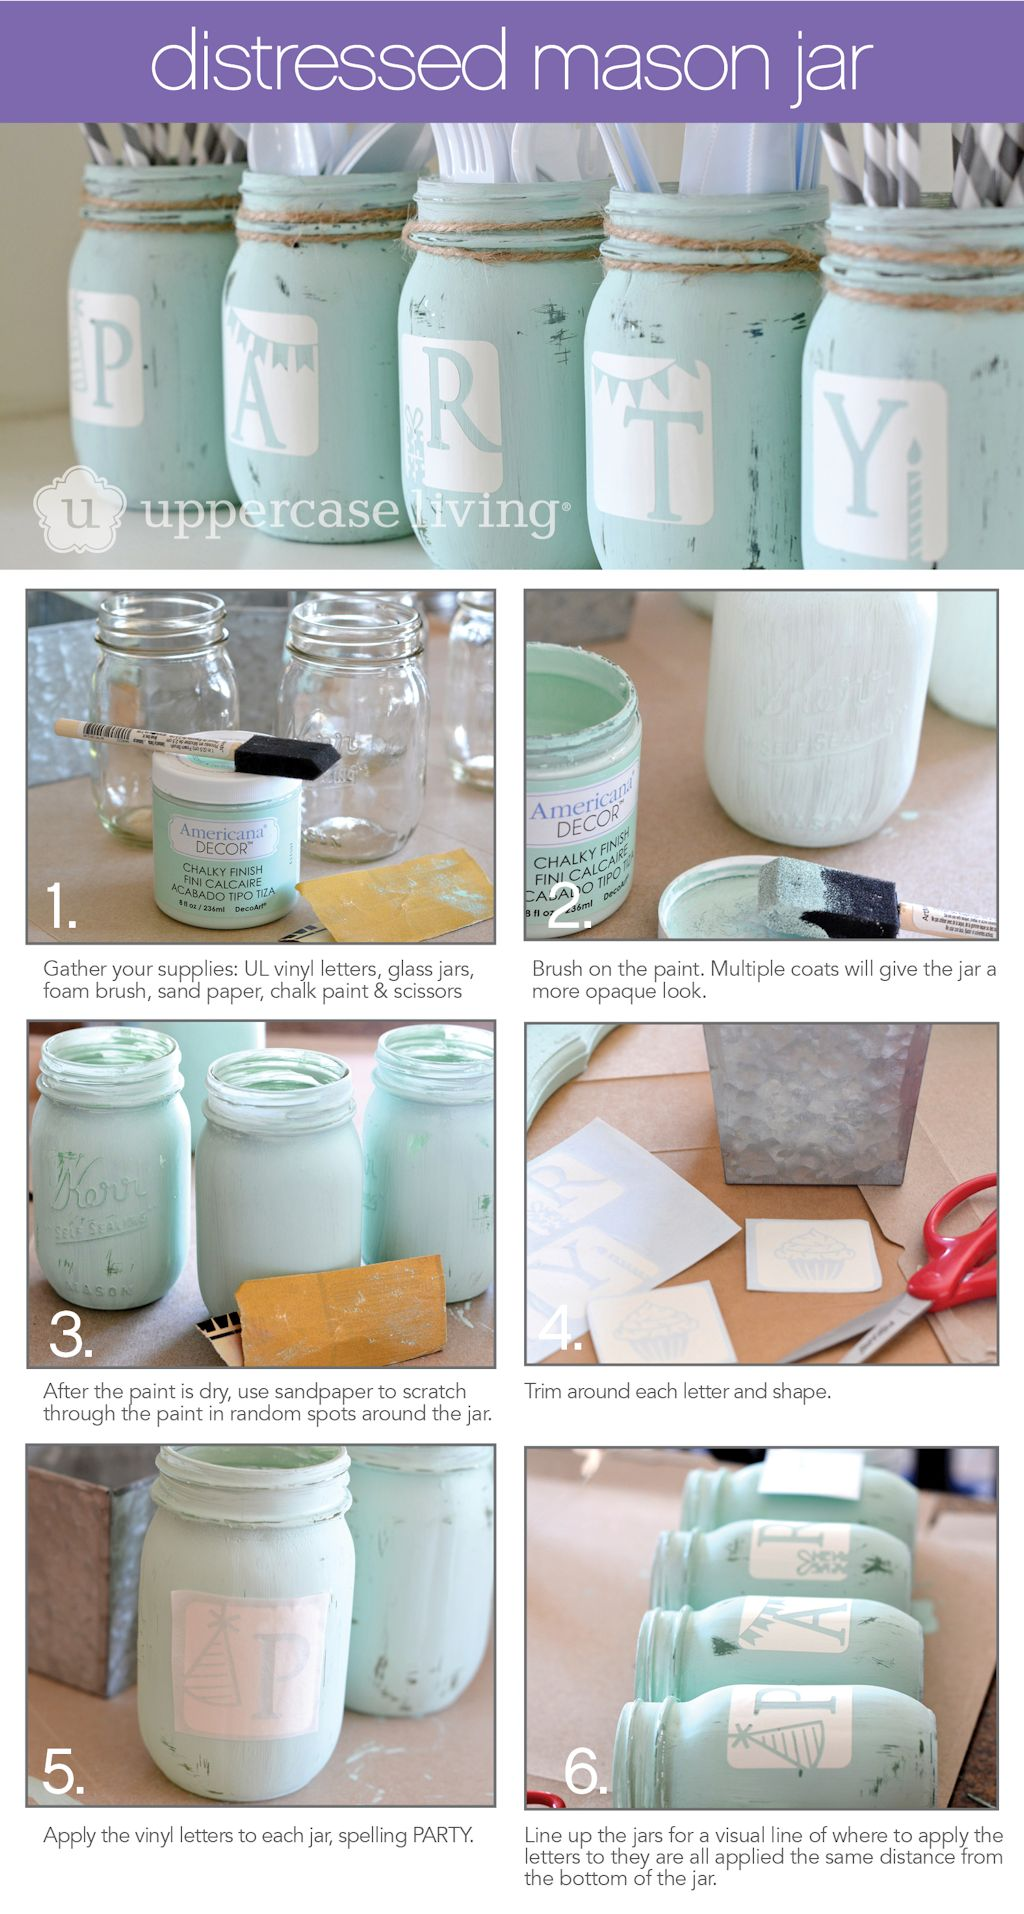 Distressed Mason Jar Project Sheet